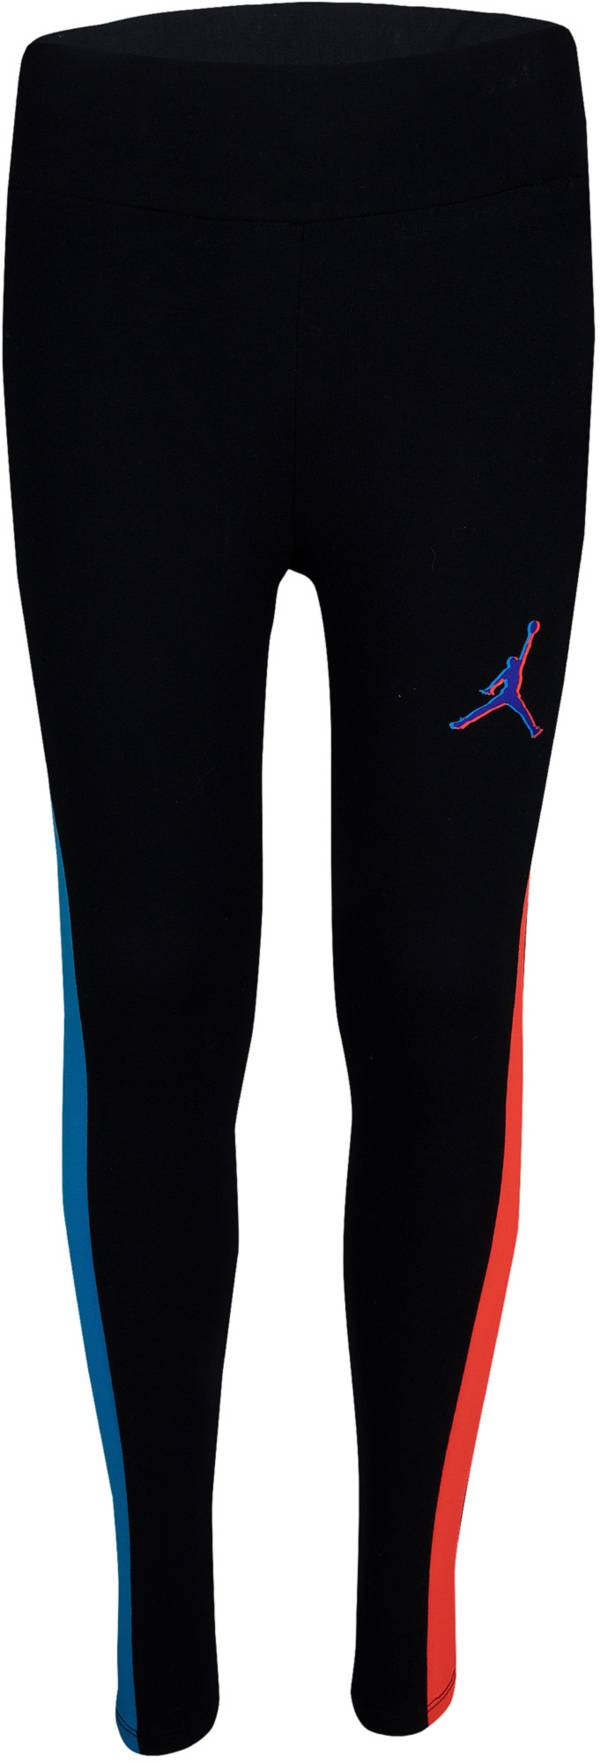 Jordan Girls' Space Glitch High-Waisted Leggings product image